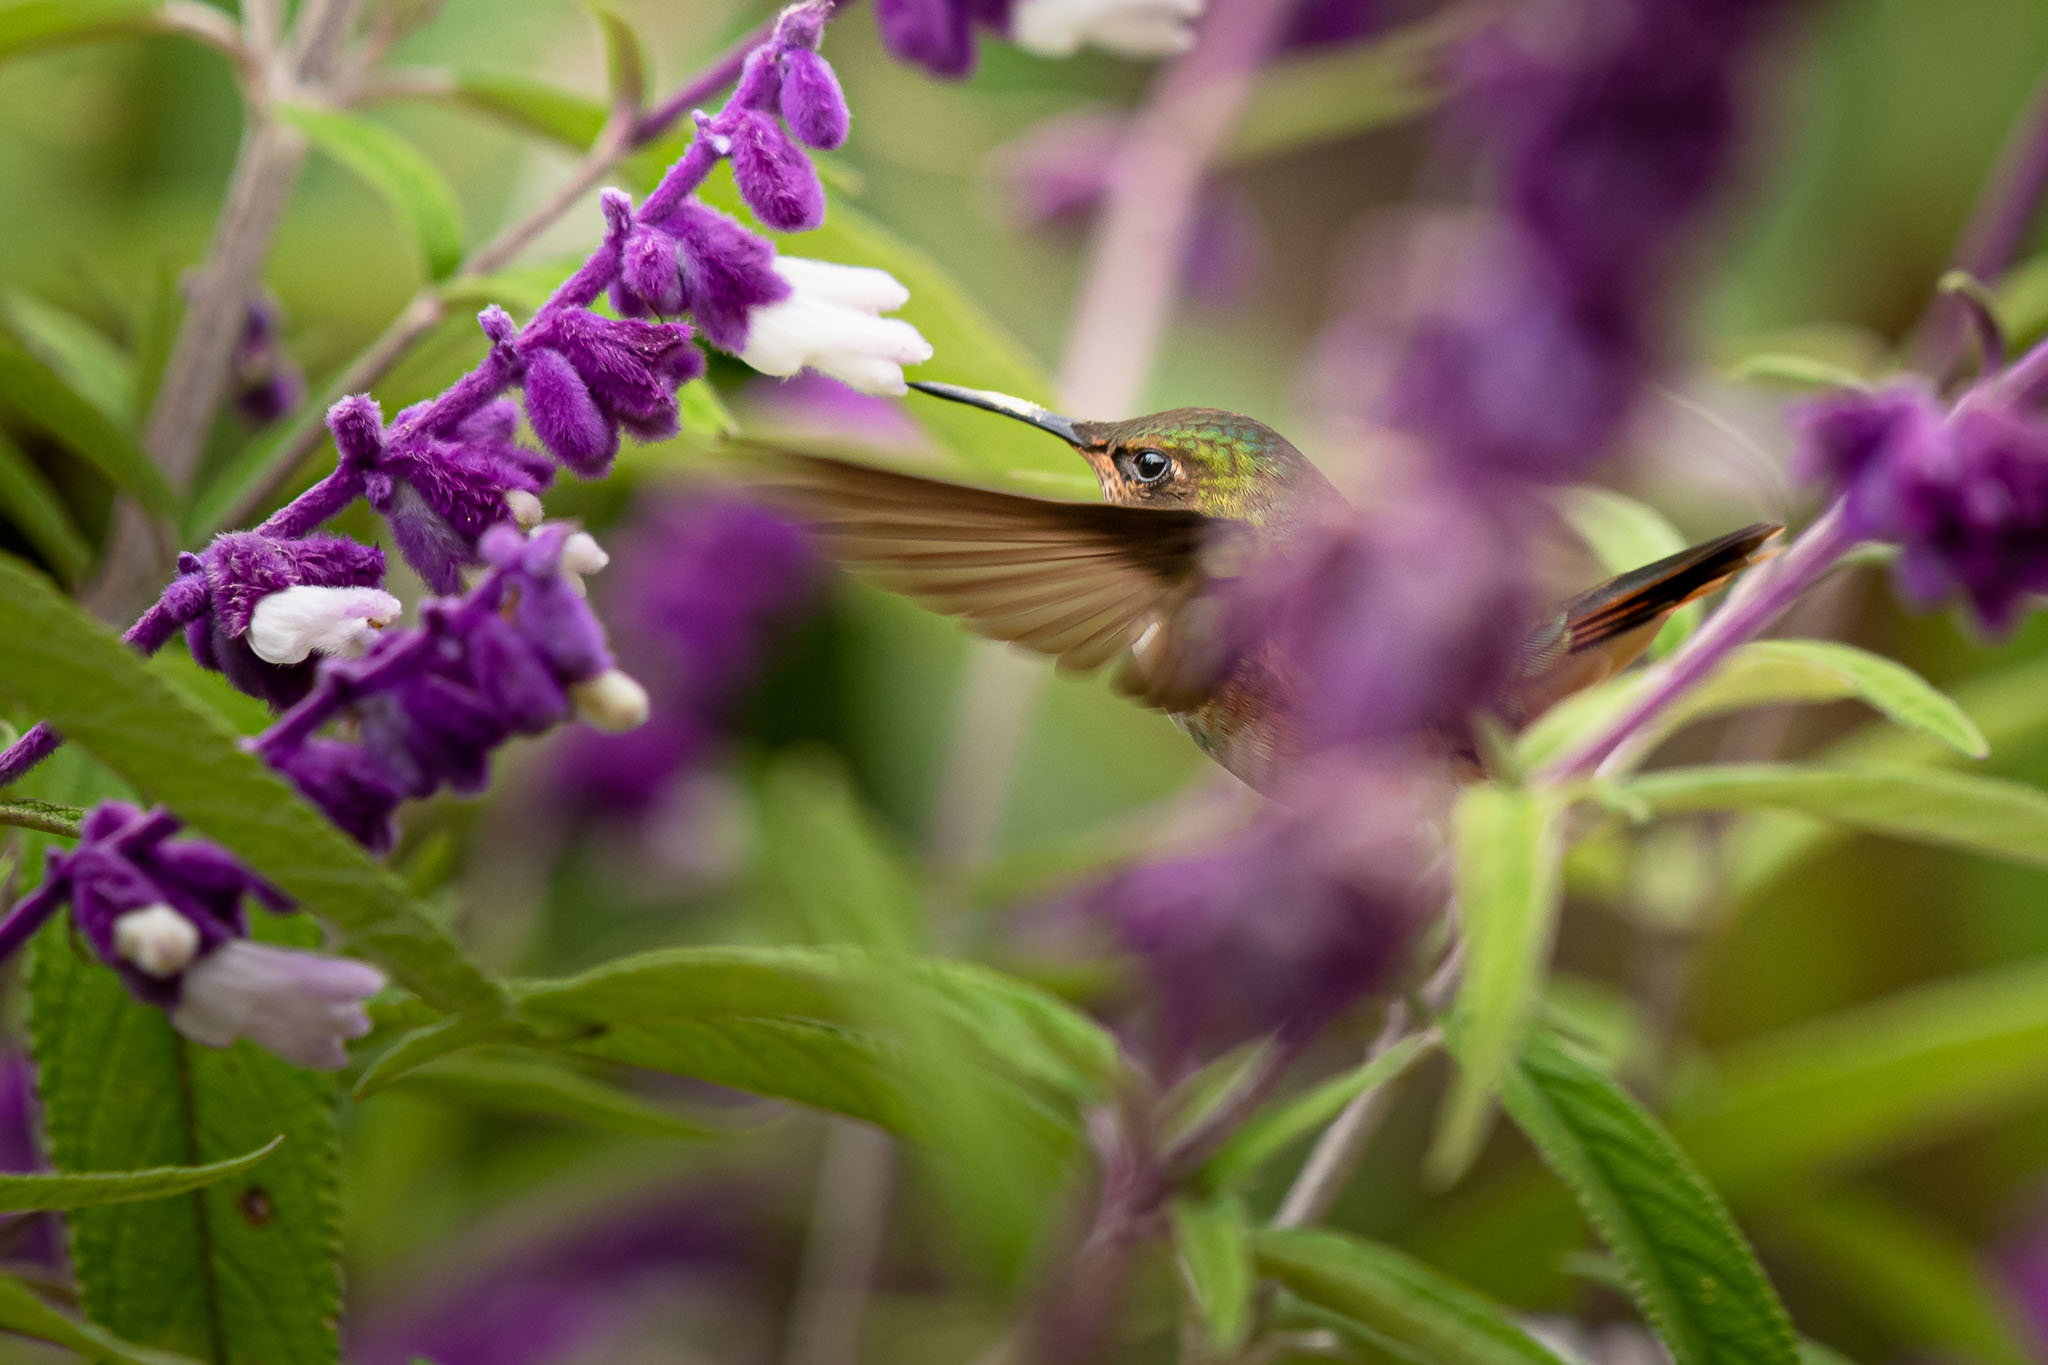 Getting hummingbirds feeding is relatively easy as they hover nicely. There speed is phenomenal as they intake a lot of sugar but while feeding they do slow down long enough to grab a shot, though not often in places it is easy to focus on them.